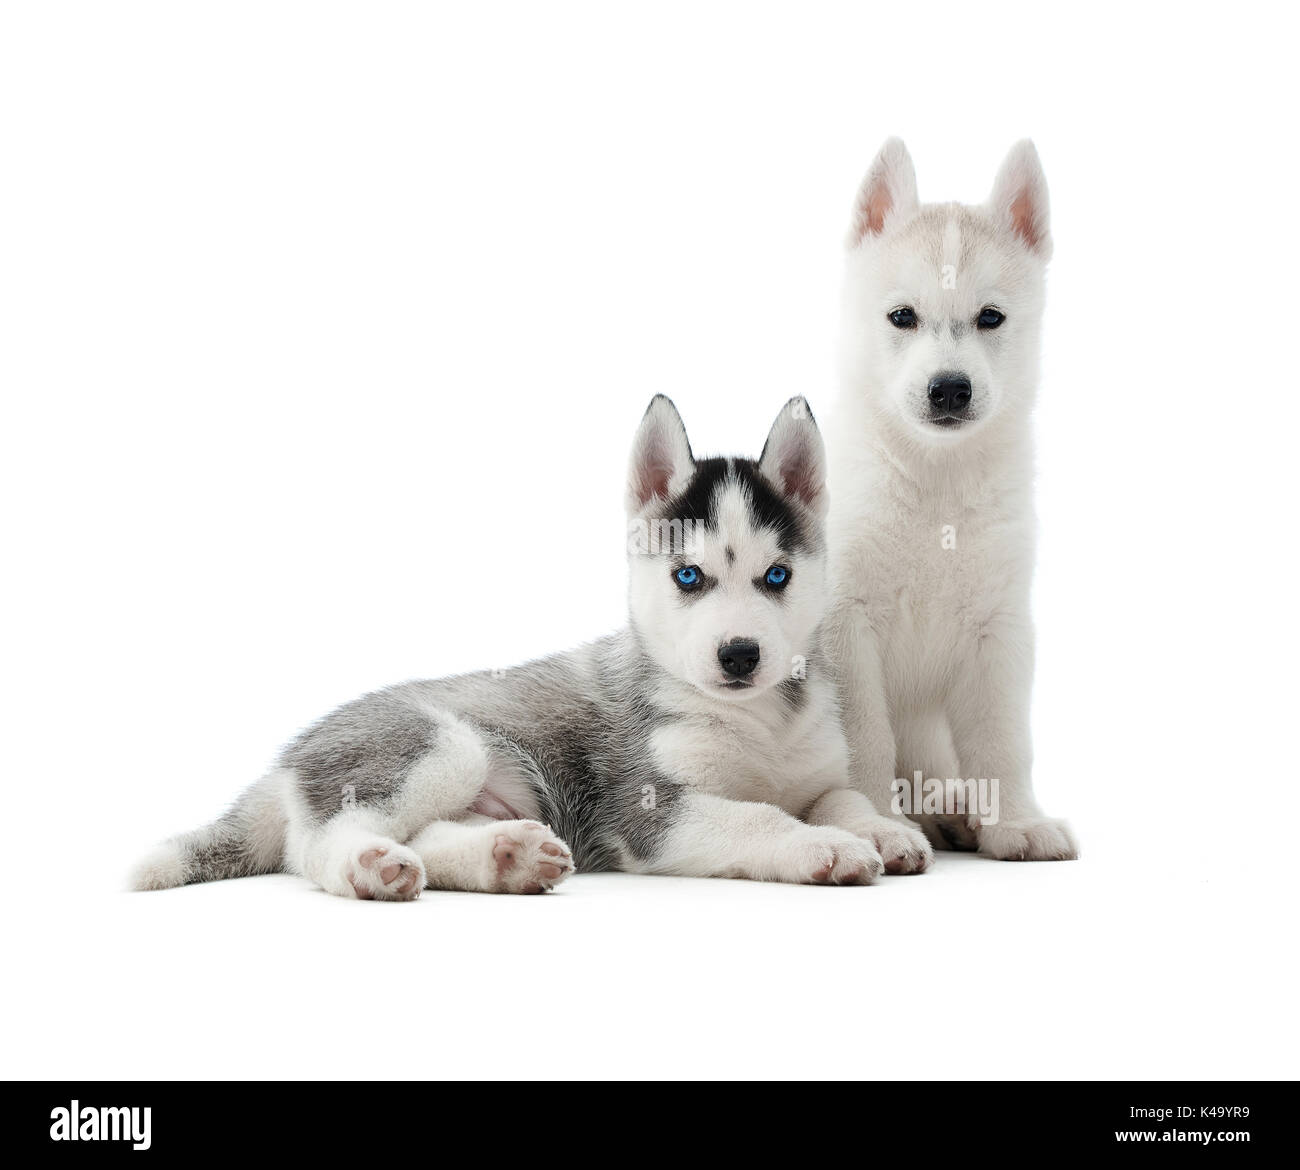 Husky puppies like wolf with gray and white color of fur. - Stock Image